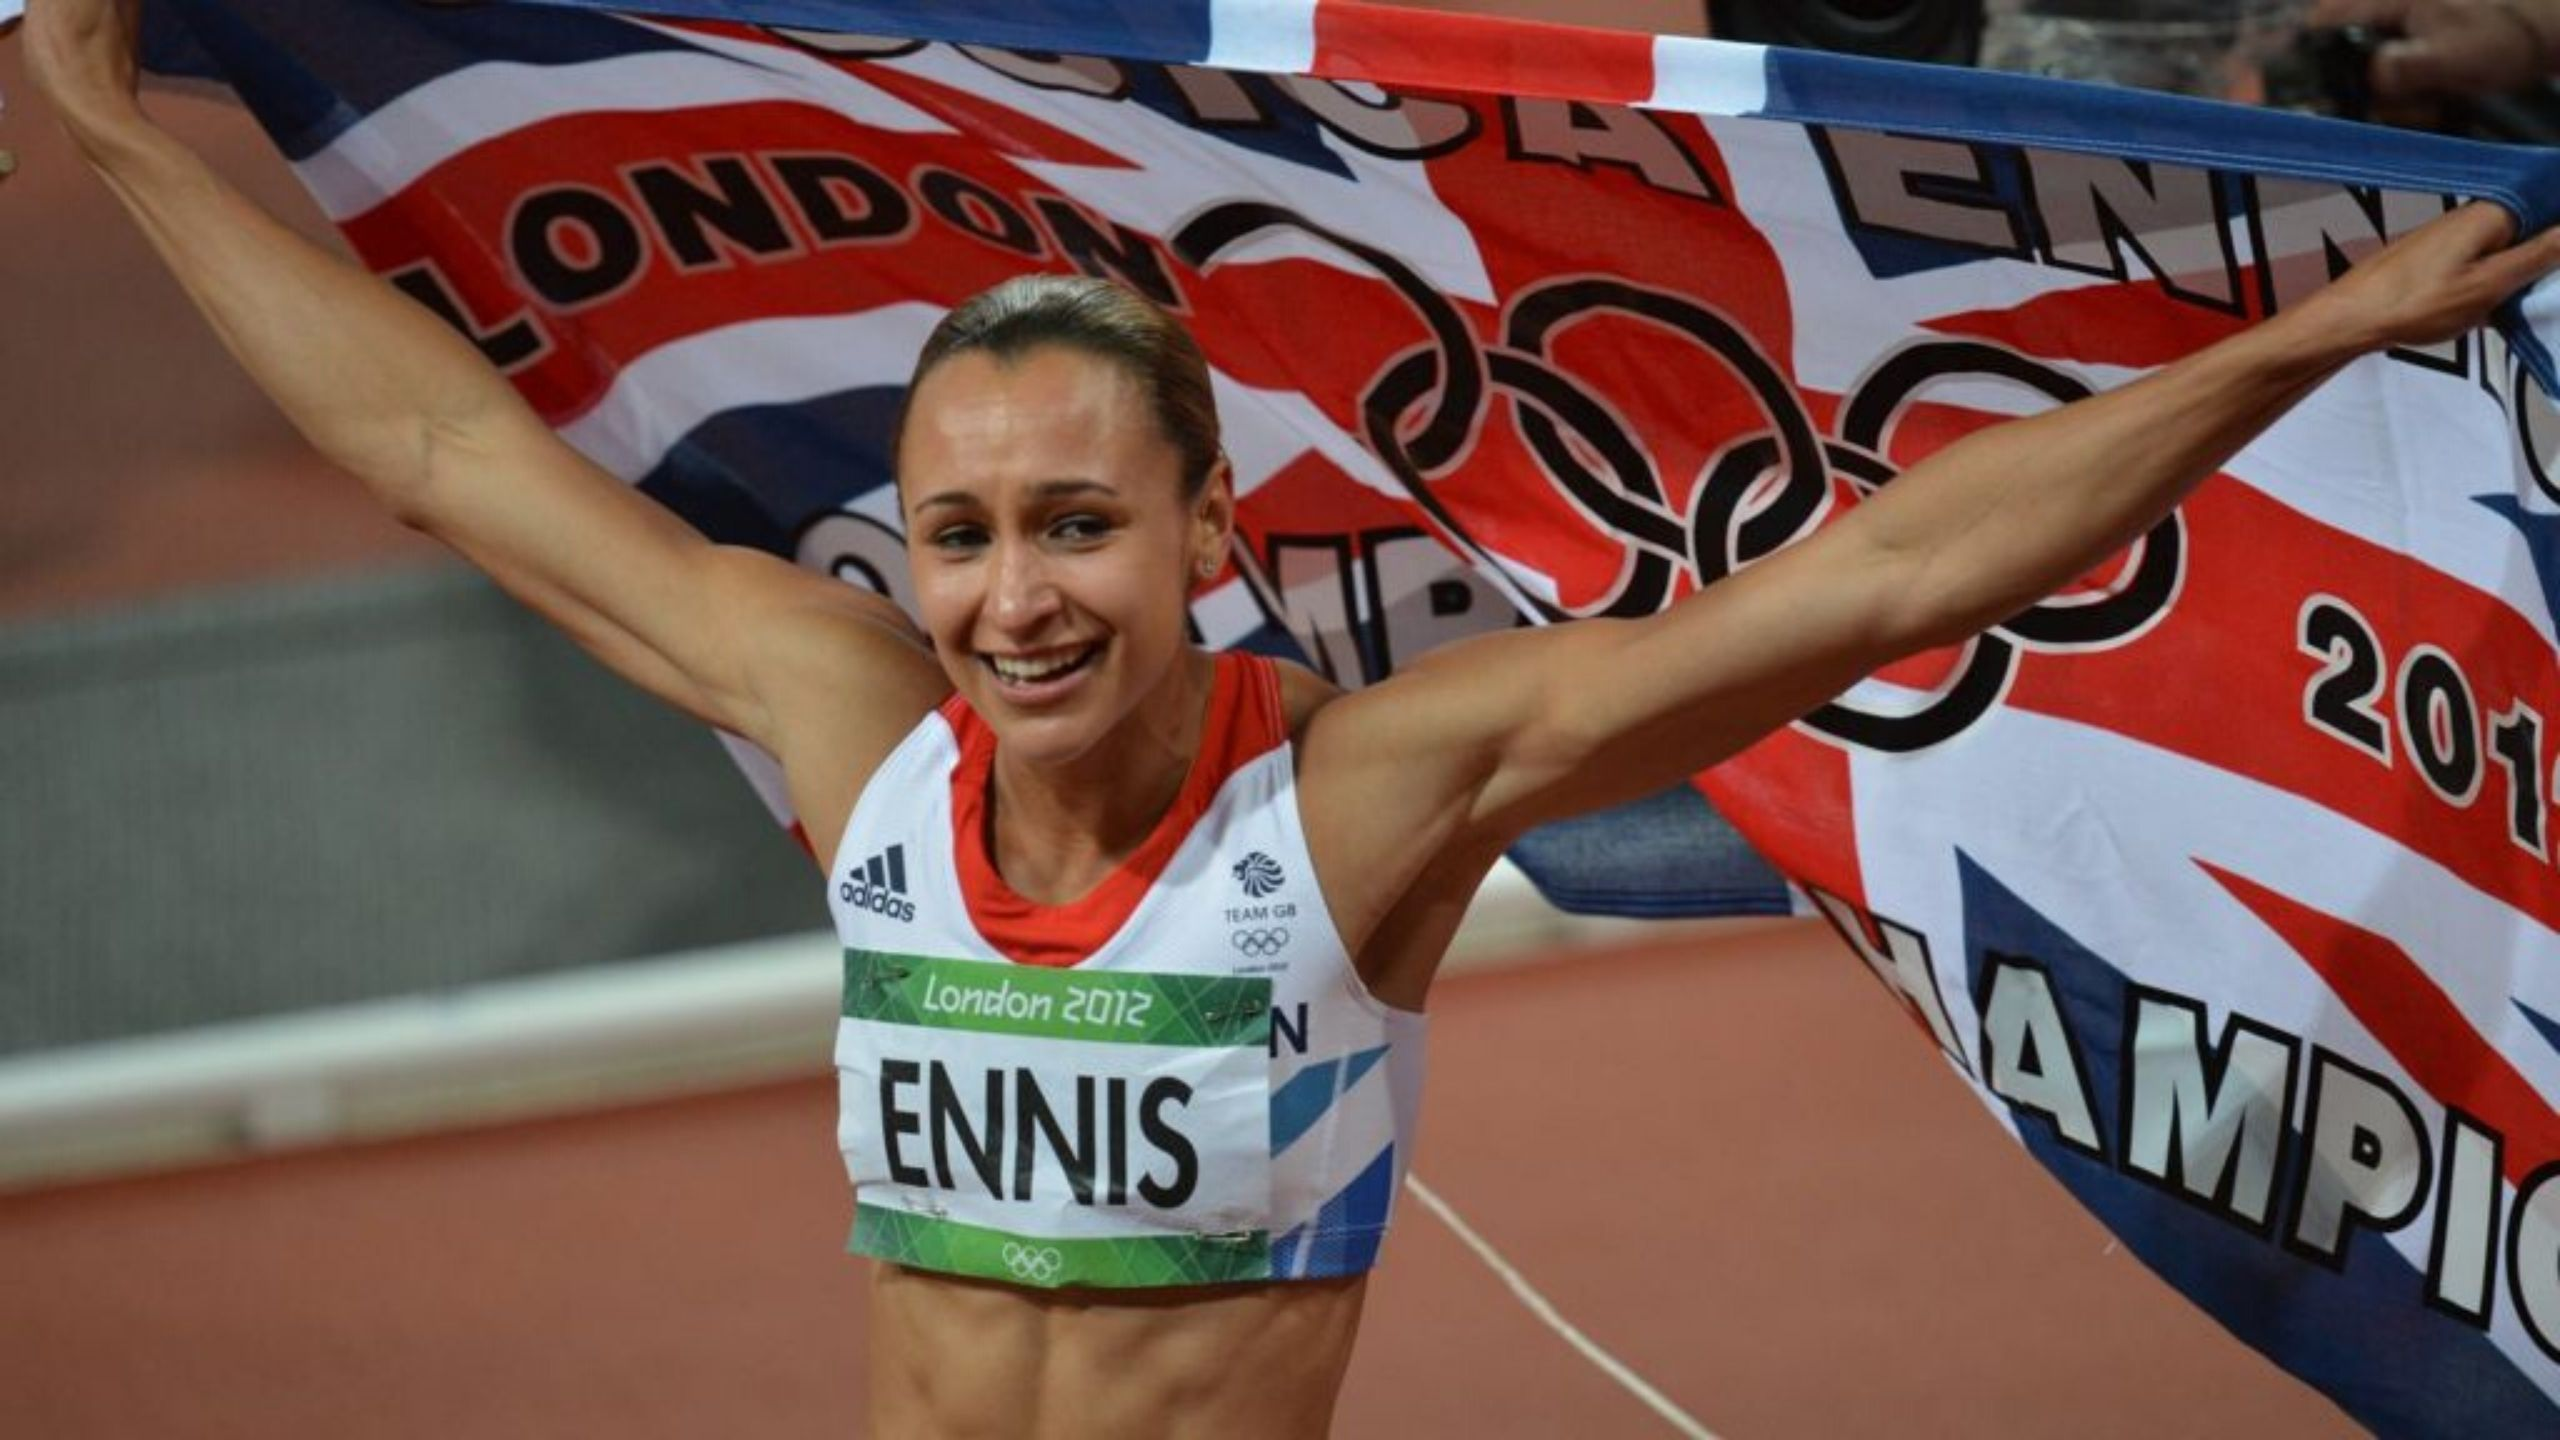 Jessica Ennis-Hill competing in the 2012 Olympics whilst carrying a Union Jack flag